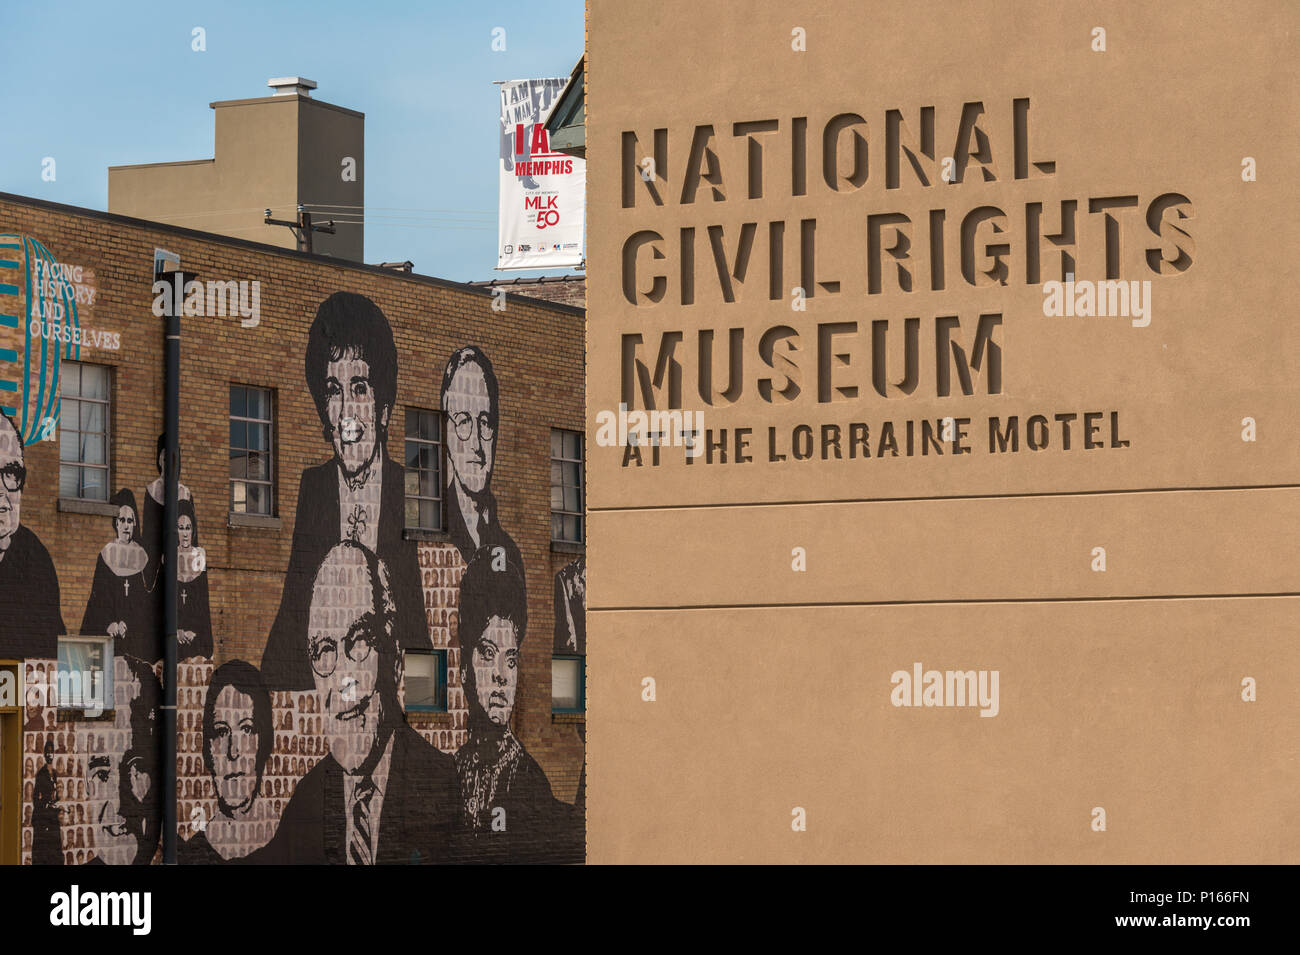 National Civil Rights Museum at the Lorraine Motel, site of the assassination of Martin Luther King in 1968, in Memphis, TN. Stock Photo